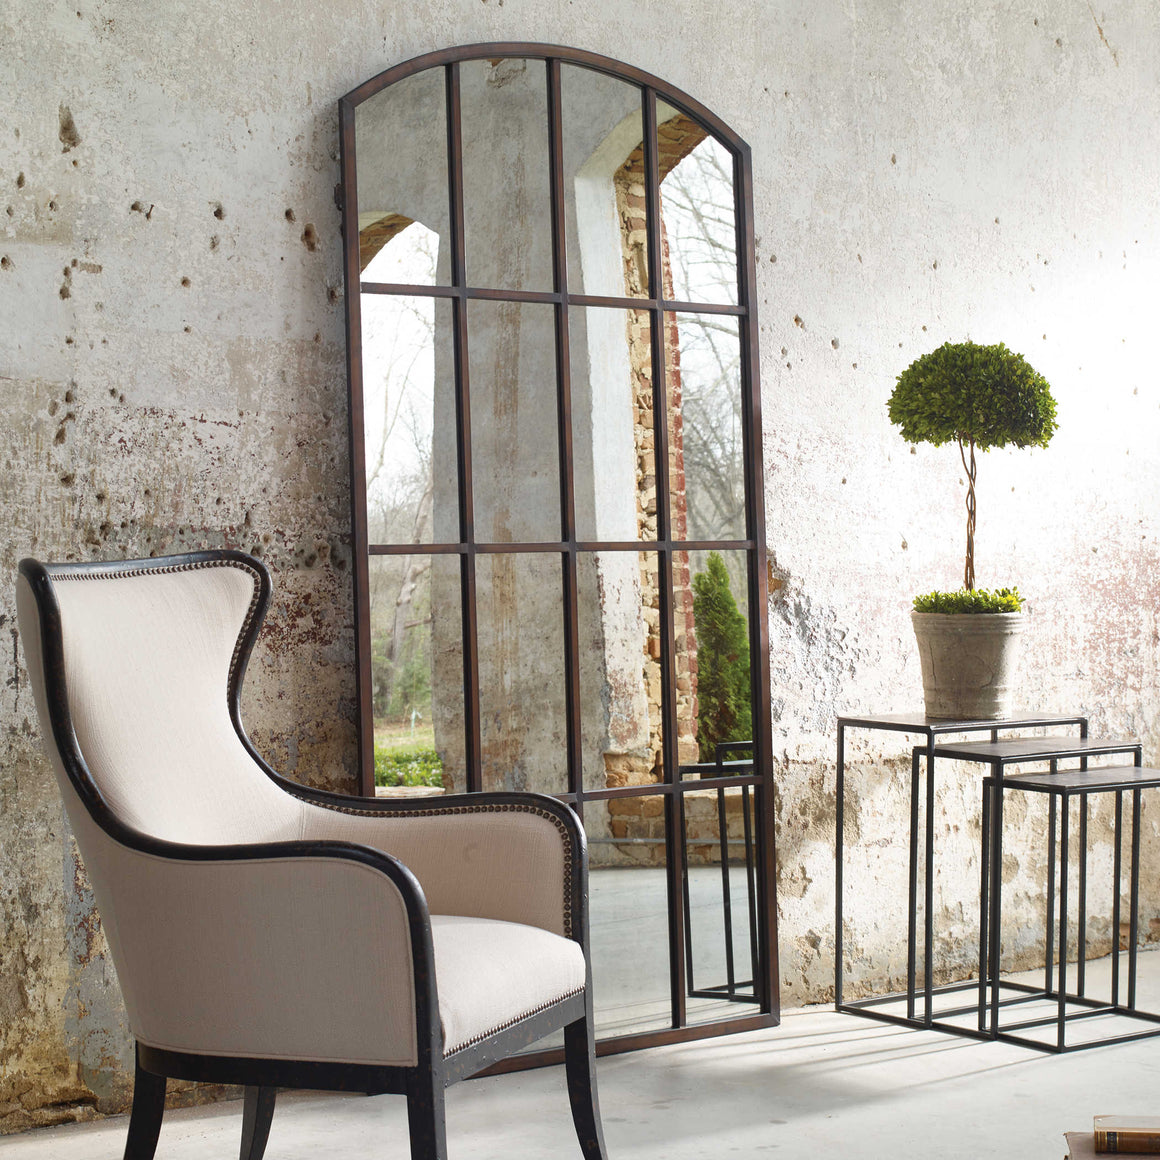 Amiel Large Arch Mirror - taylor ray decor